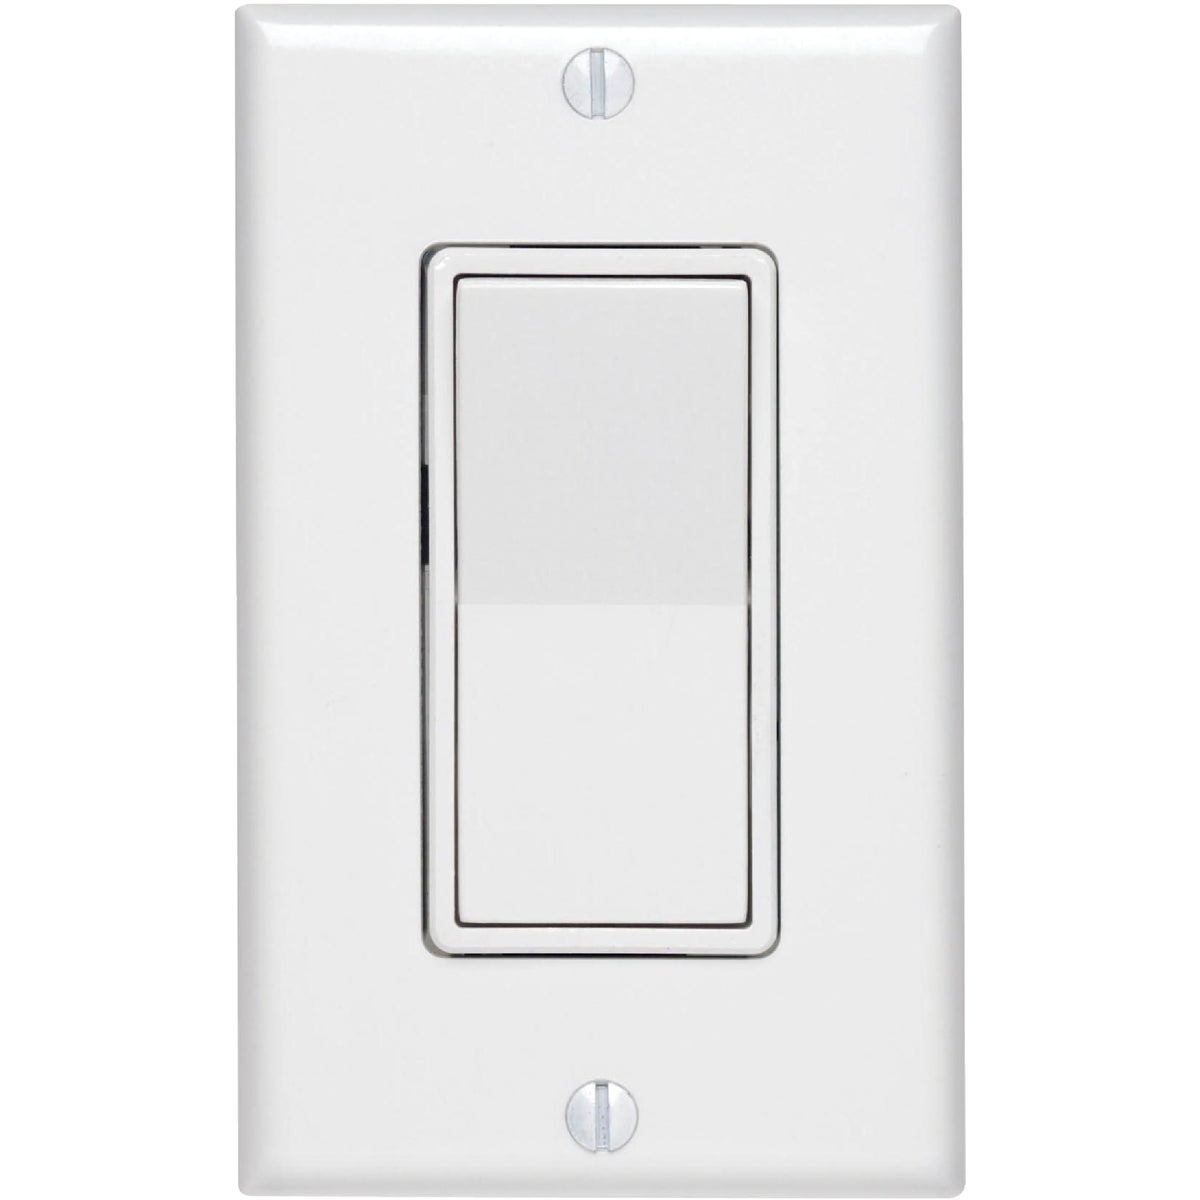 WHT SWITCH - DB2-5671-2W by Leviton Mfg Co